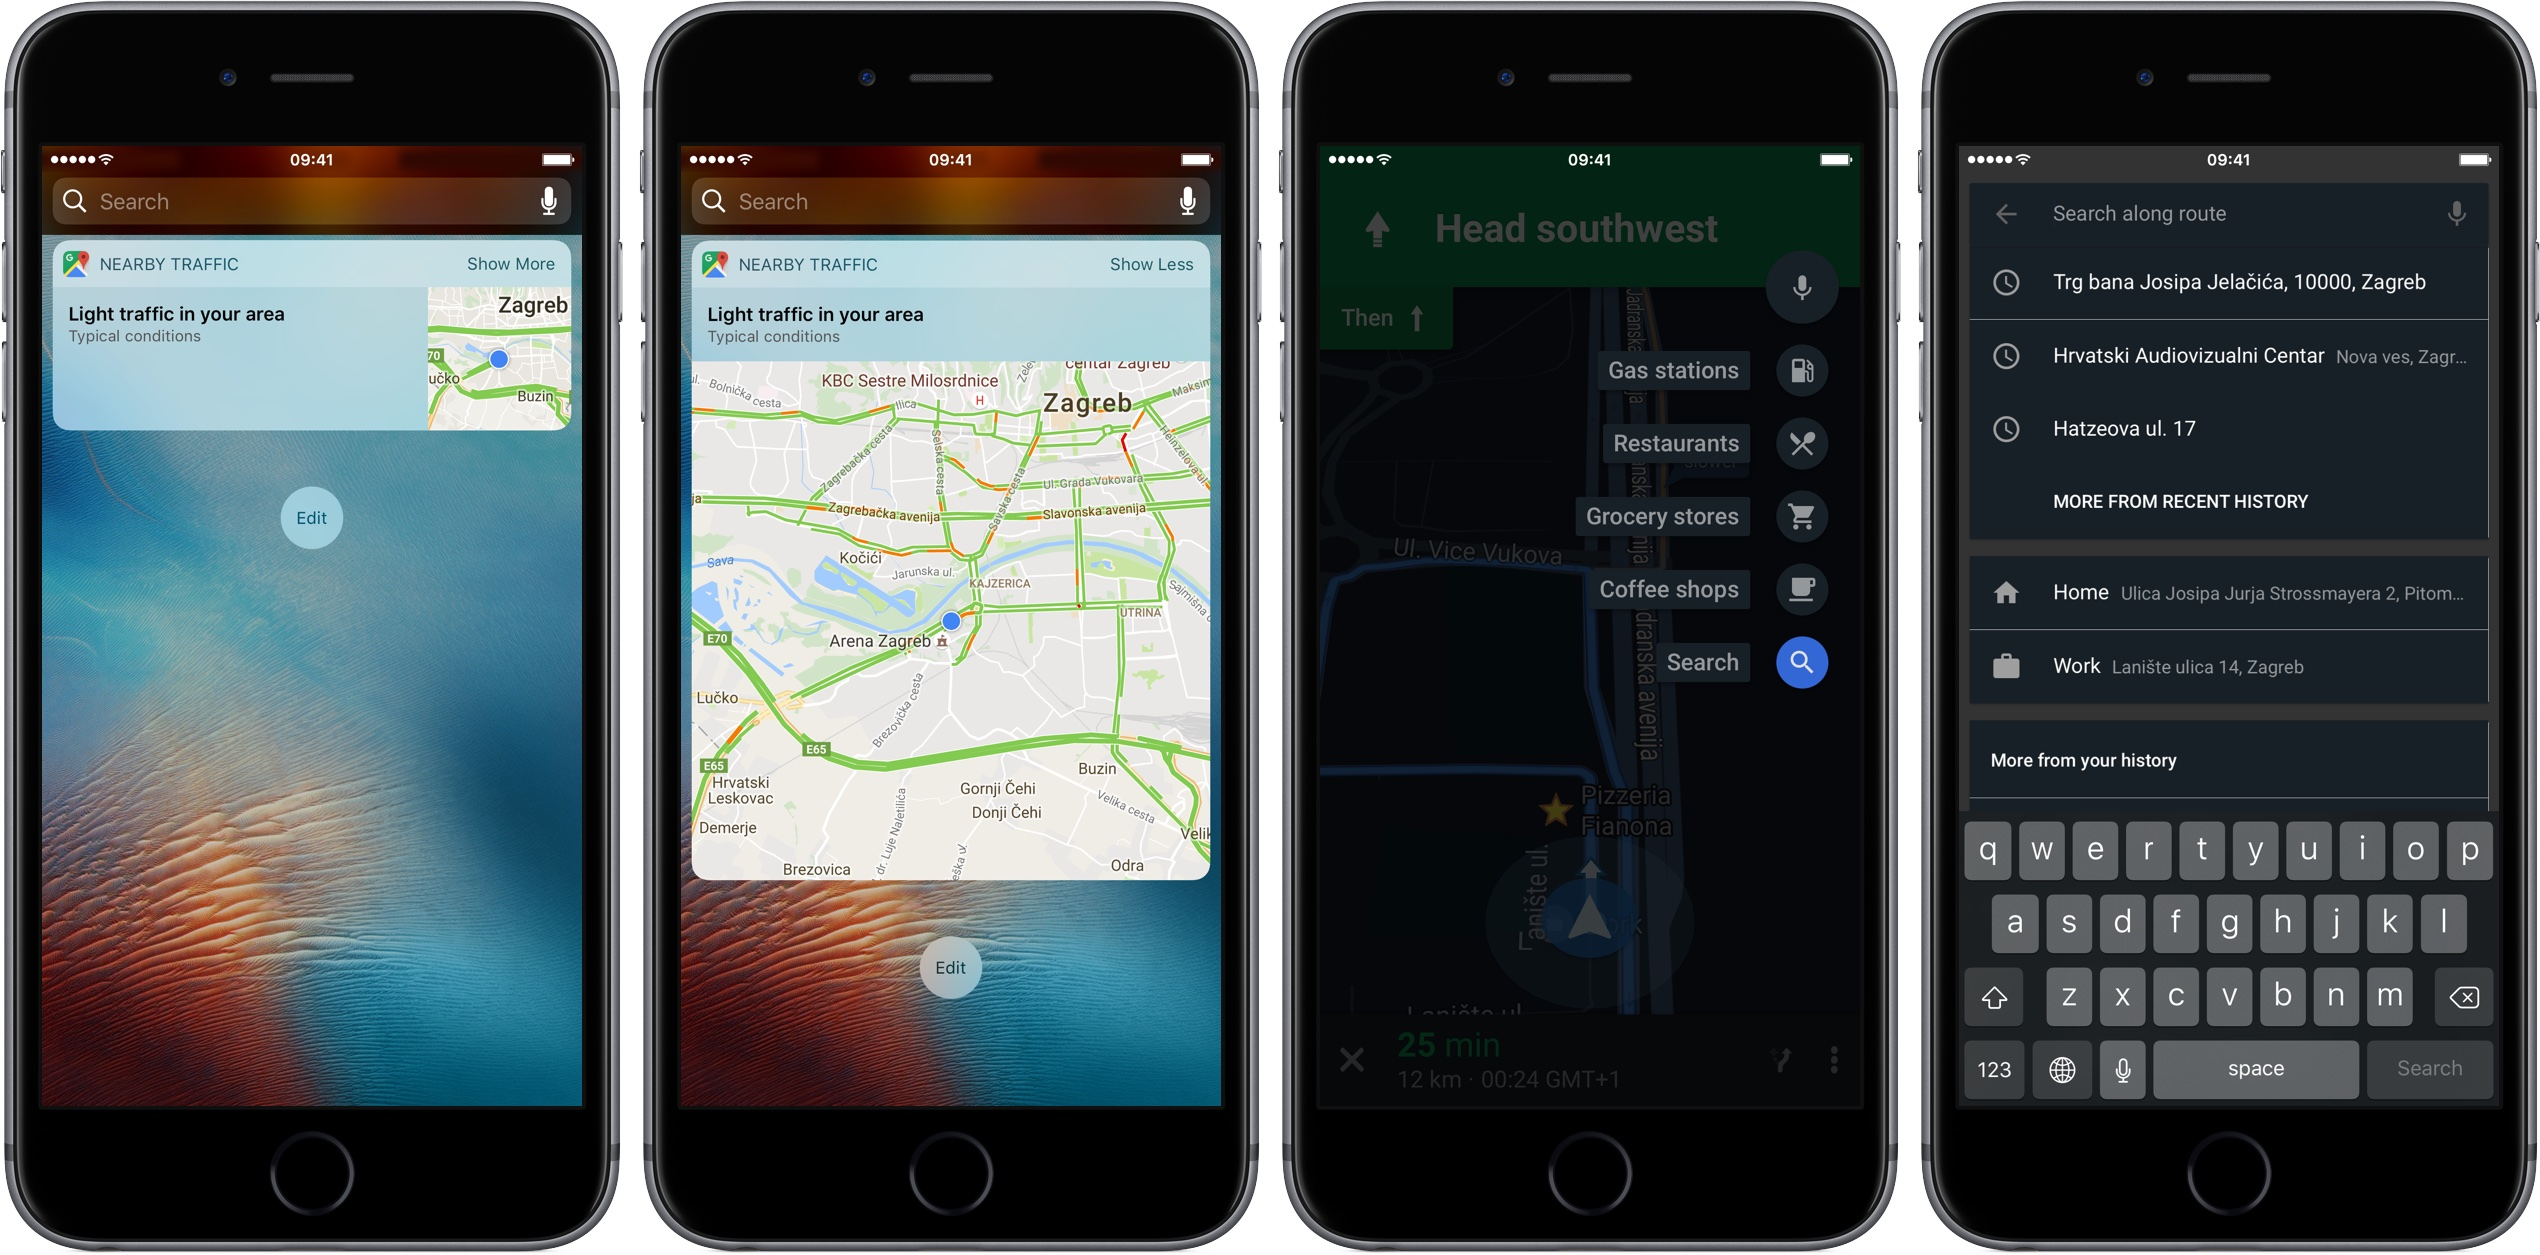 Google Maps for iOS updated with searching along route and ... on google maps update, google maps screenshot, google maps path,